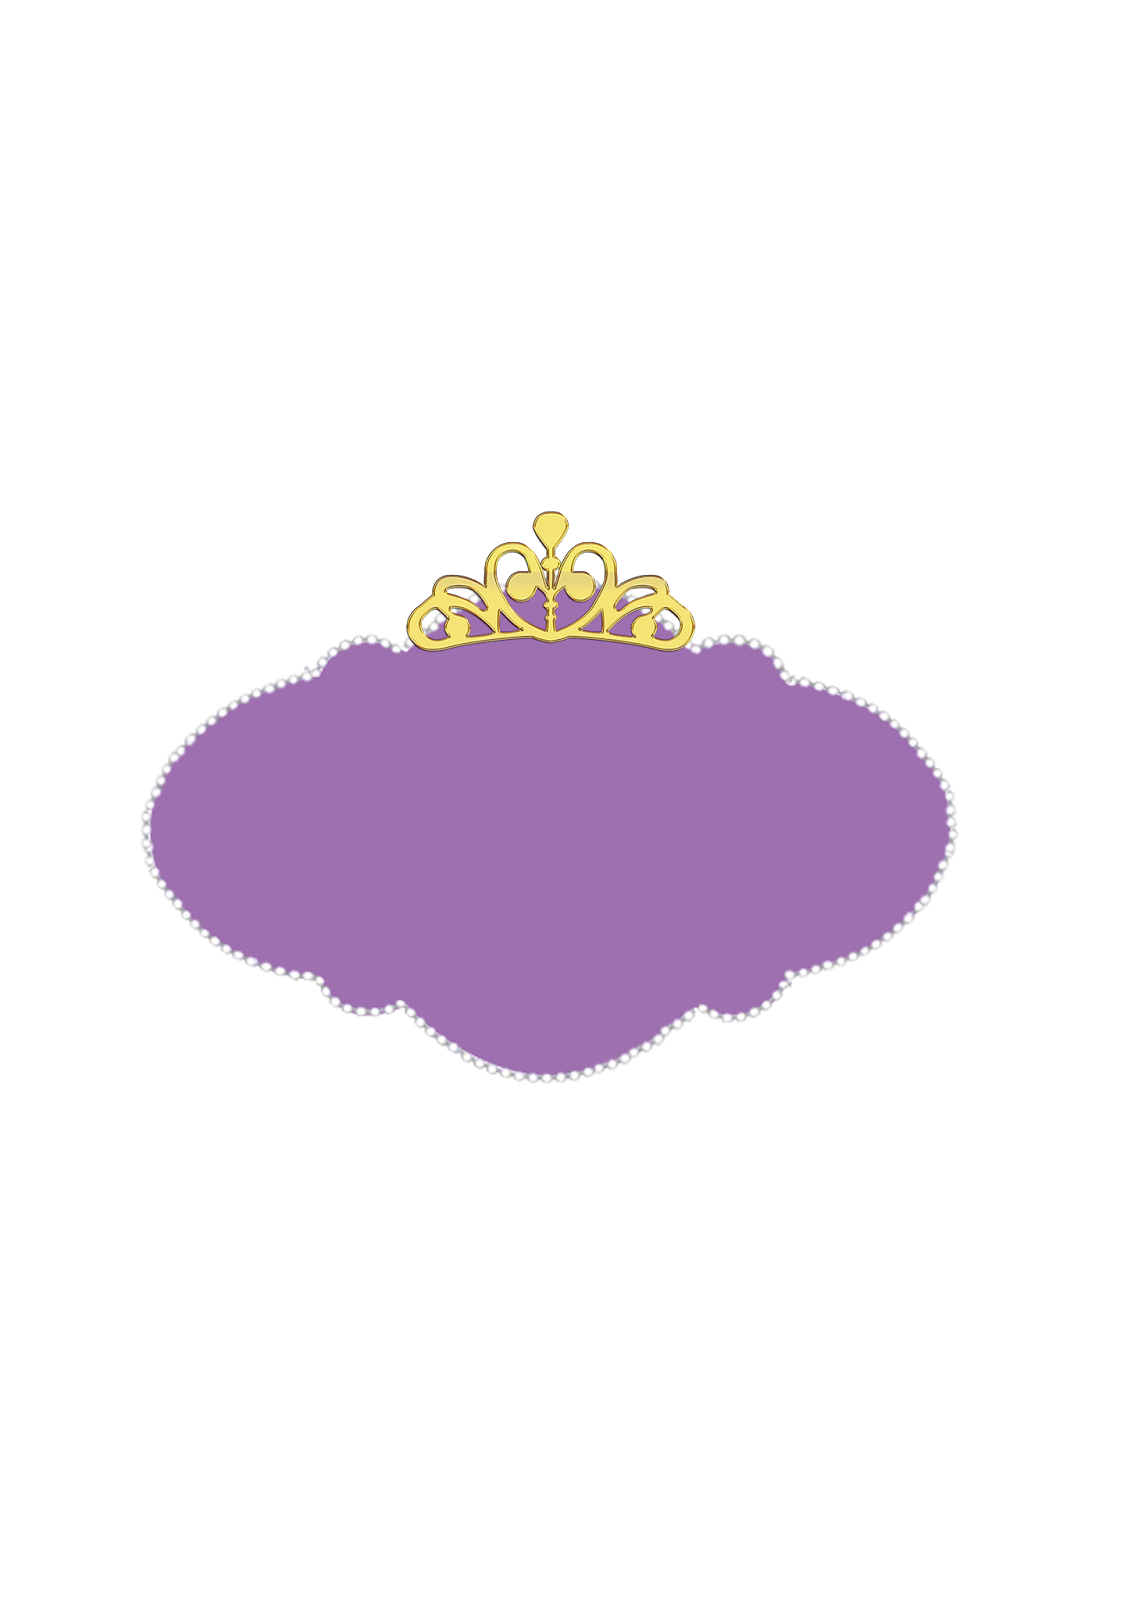 Free clipart princess crown graphic library download Sofia The First Crown Clipart (37+) graphic library download